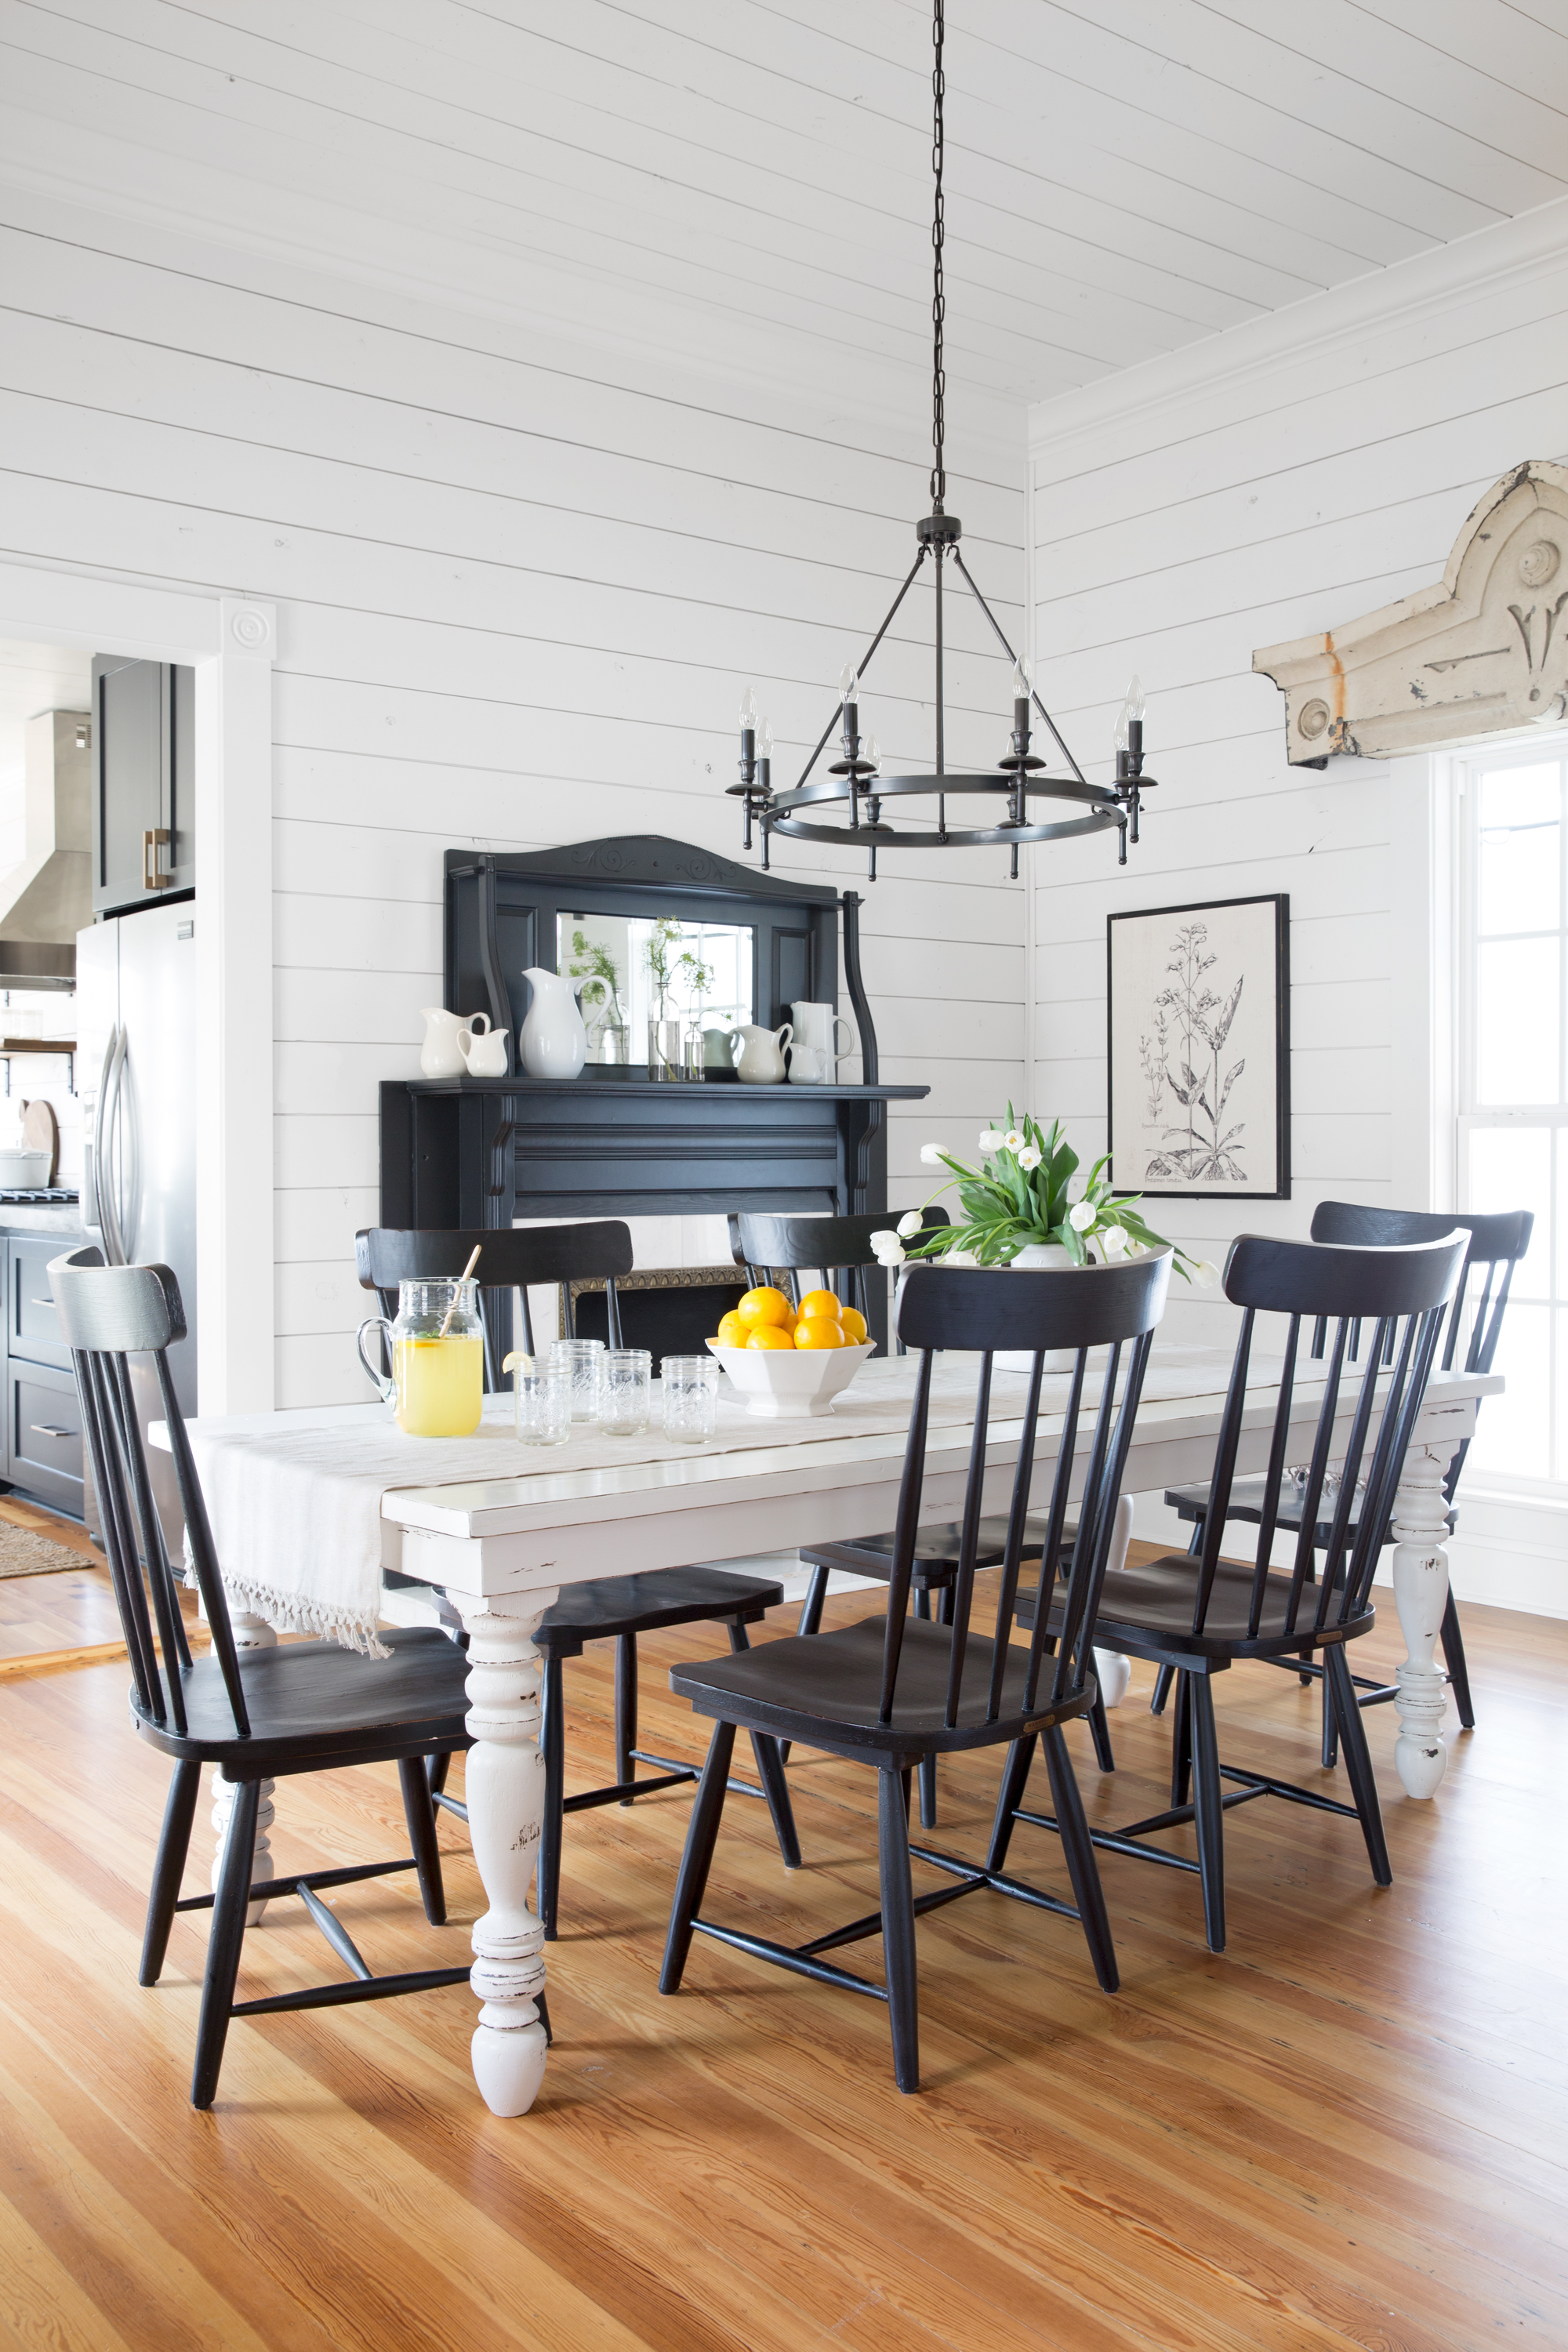 Chip and joanna gaines magnolia house b b tour fixer for Where is chip and joanna gaines bed and breakfast located